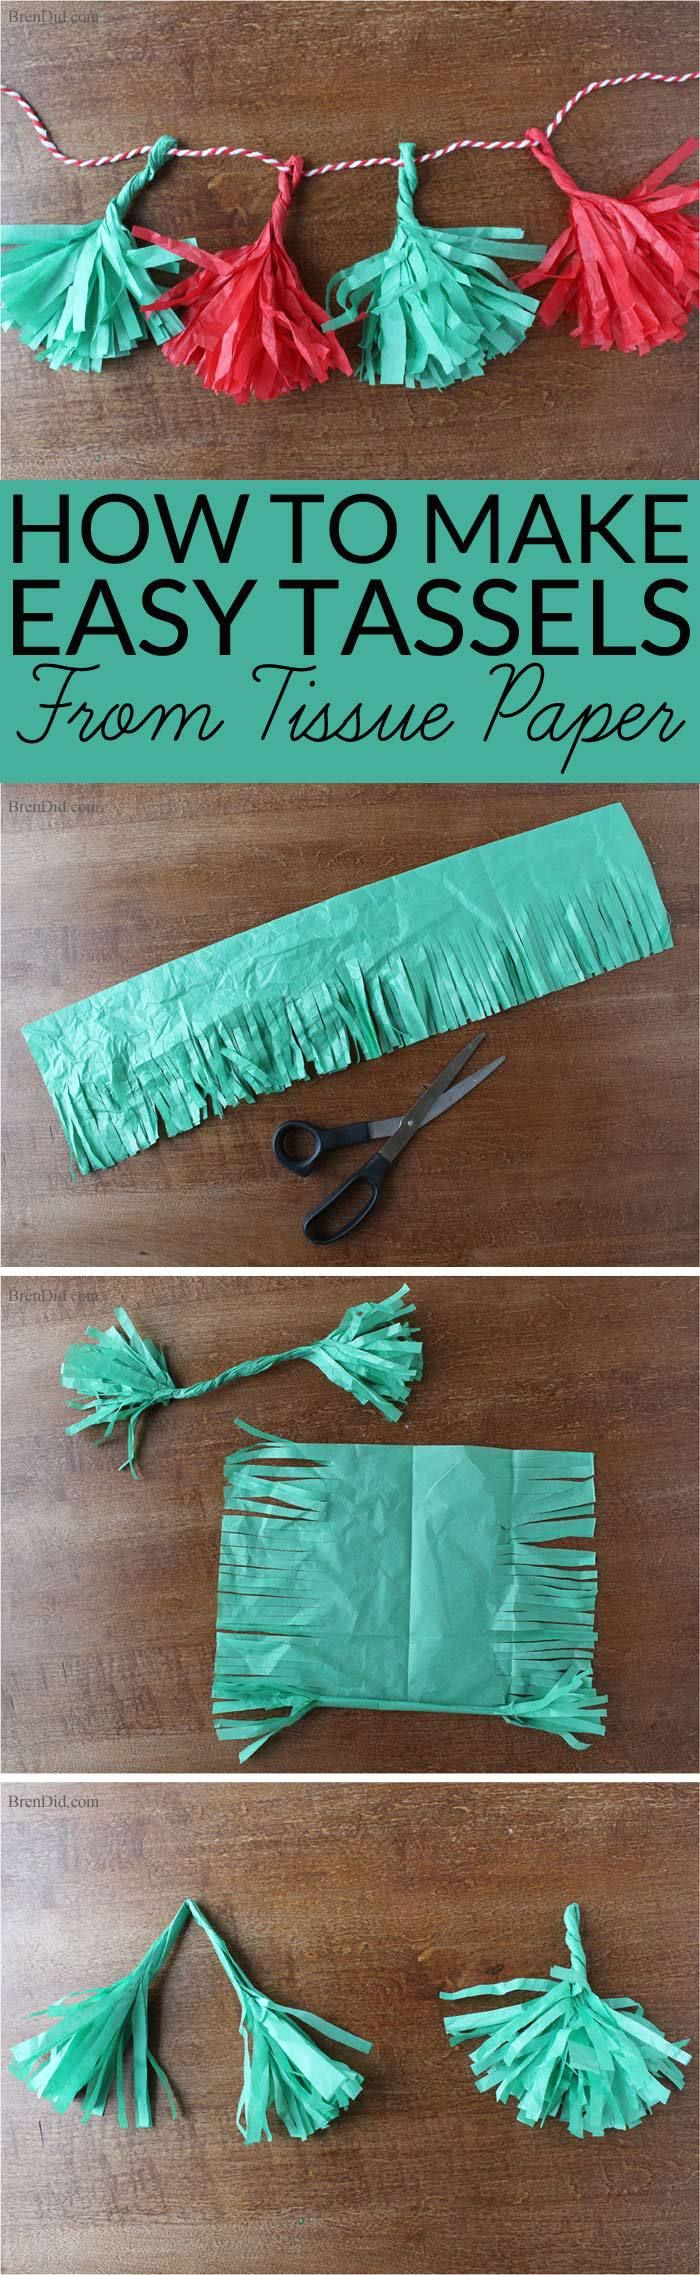 How to Make Tassels from Tissue Paper - Make your own free eco-friendly paper tassels for garlands and gift tie-ons using justtissue…